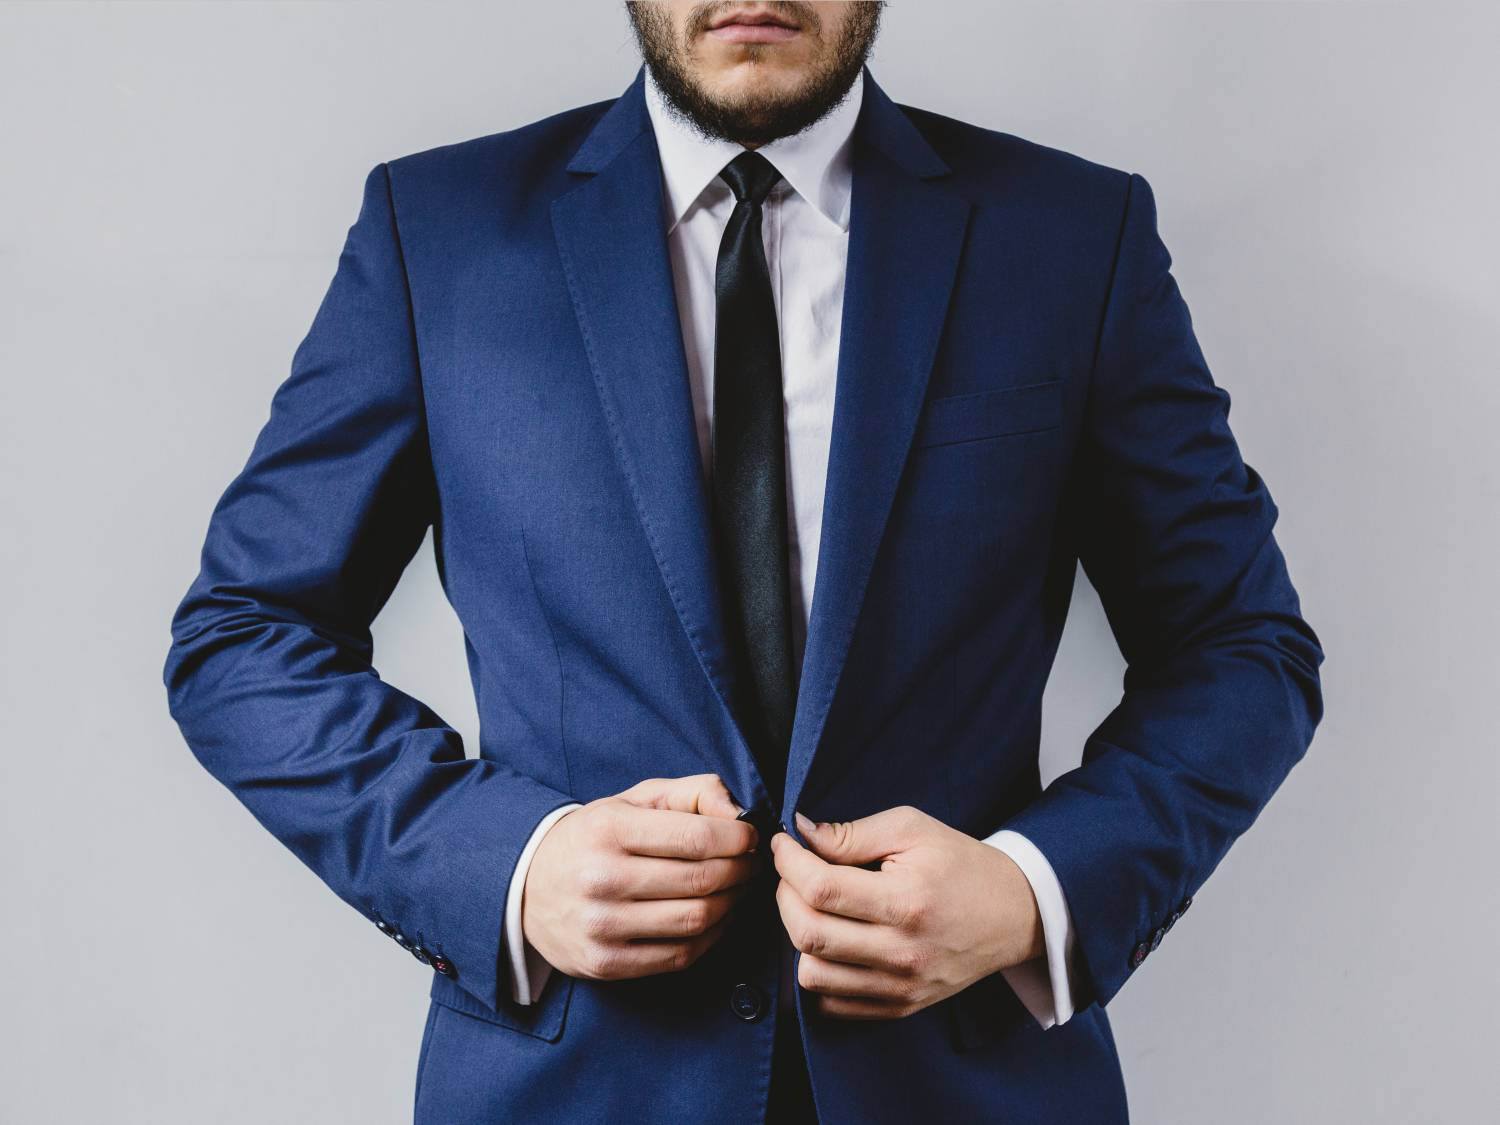 what to wear to a winter wedding, wedding style, wedding suit, winter suit, mens style